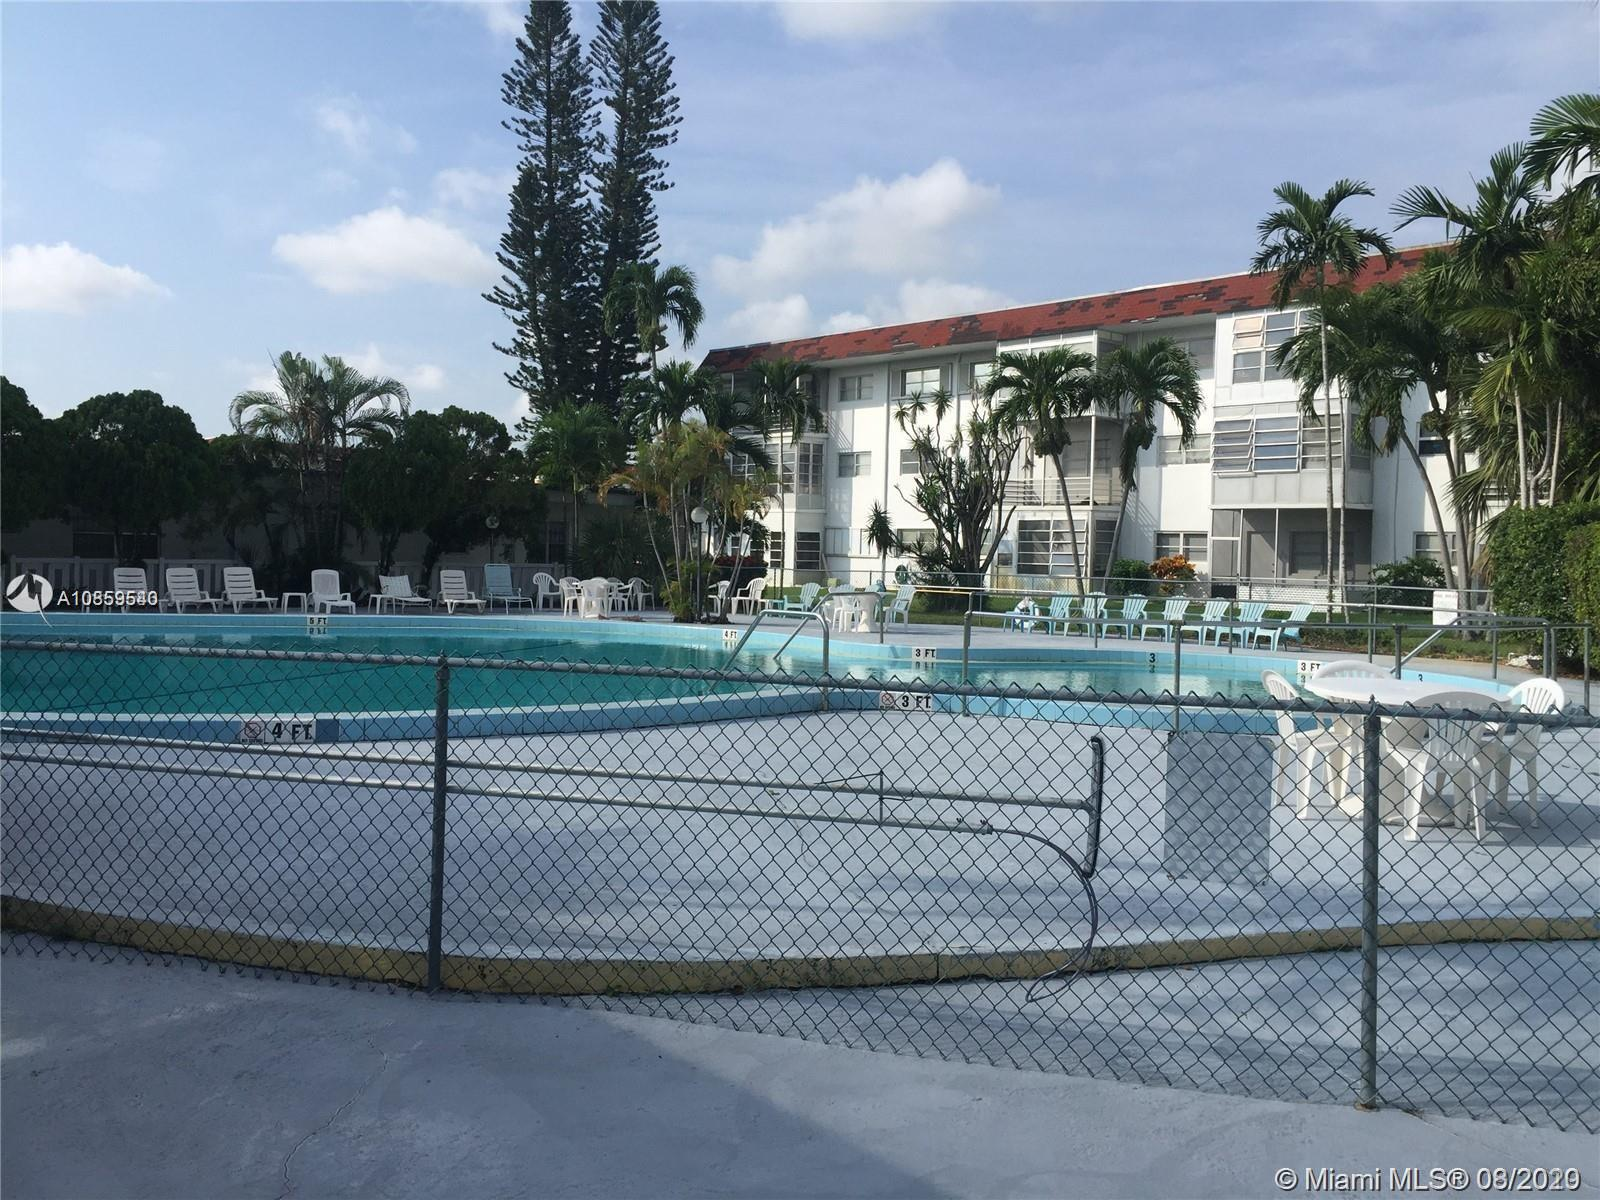 1310 NW 43rd Ave # 203, Lauderhill, Florida 33313, 1 Bedroom Bedrooms, ,1 BathroomBathrooms,Residential,For Sale,1310 NW 43rd Ave # 203,A10859540